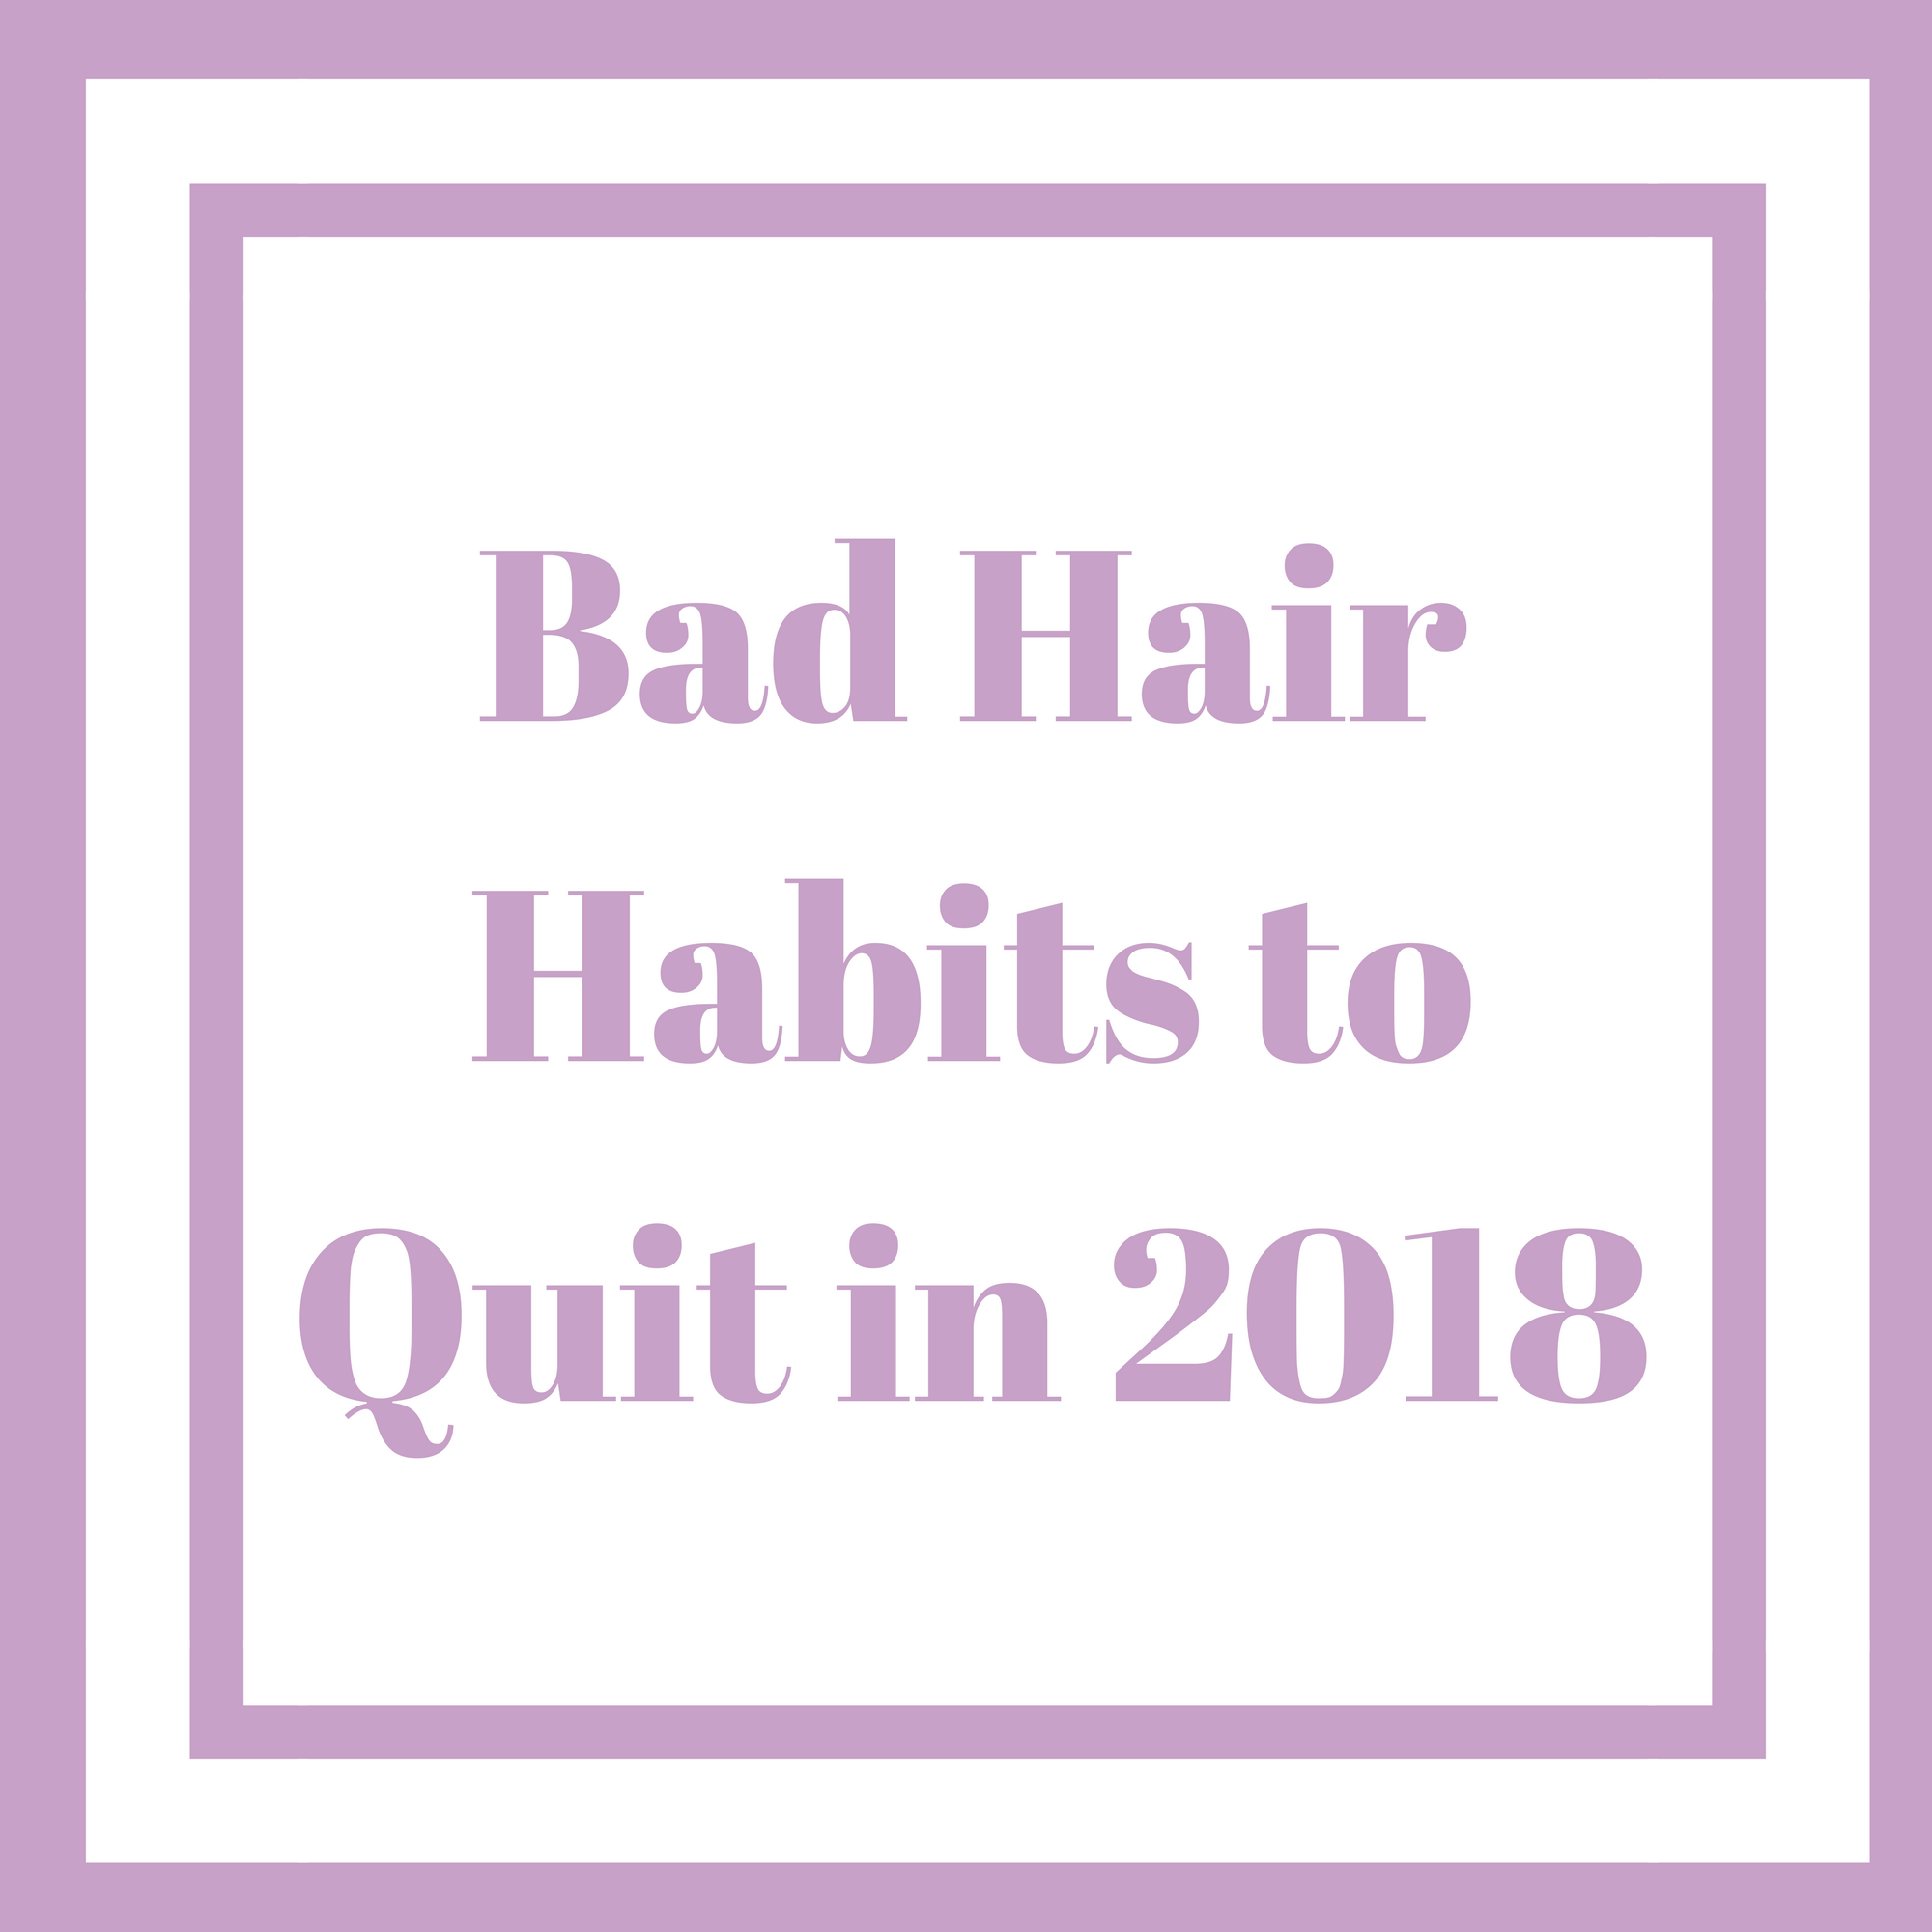 BAD HAIR HABITS TO QUIT IN 2018